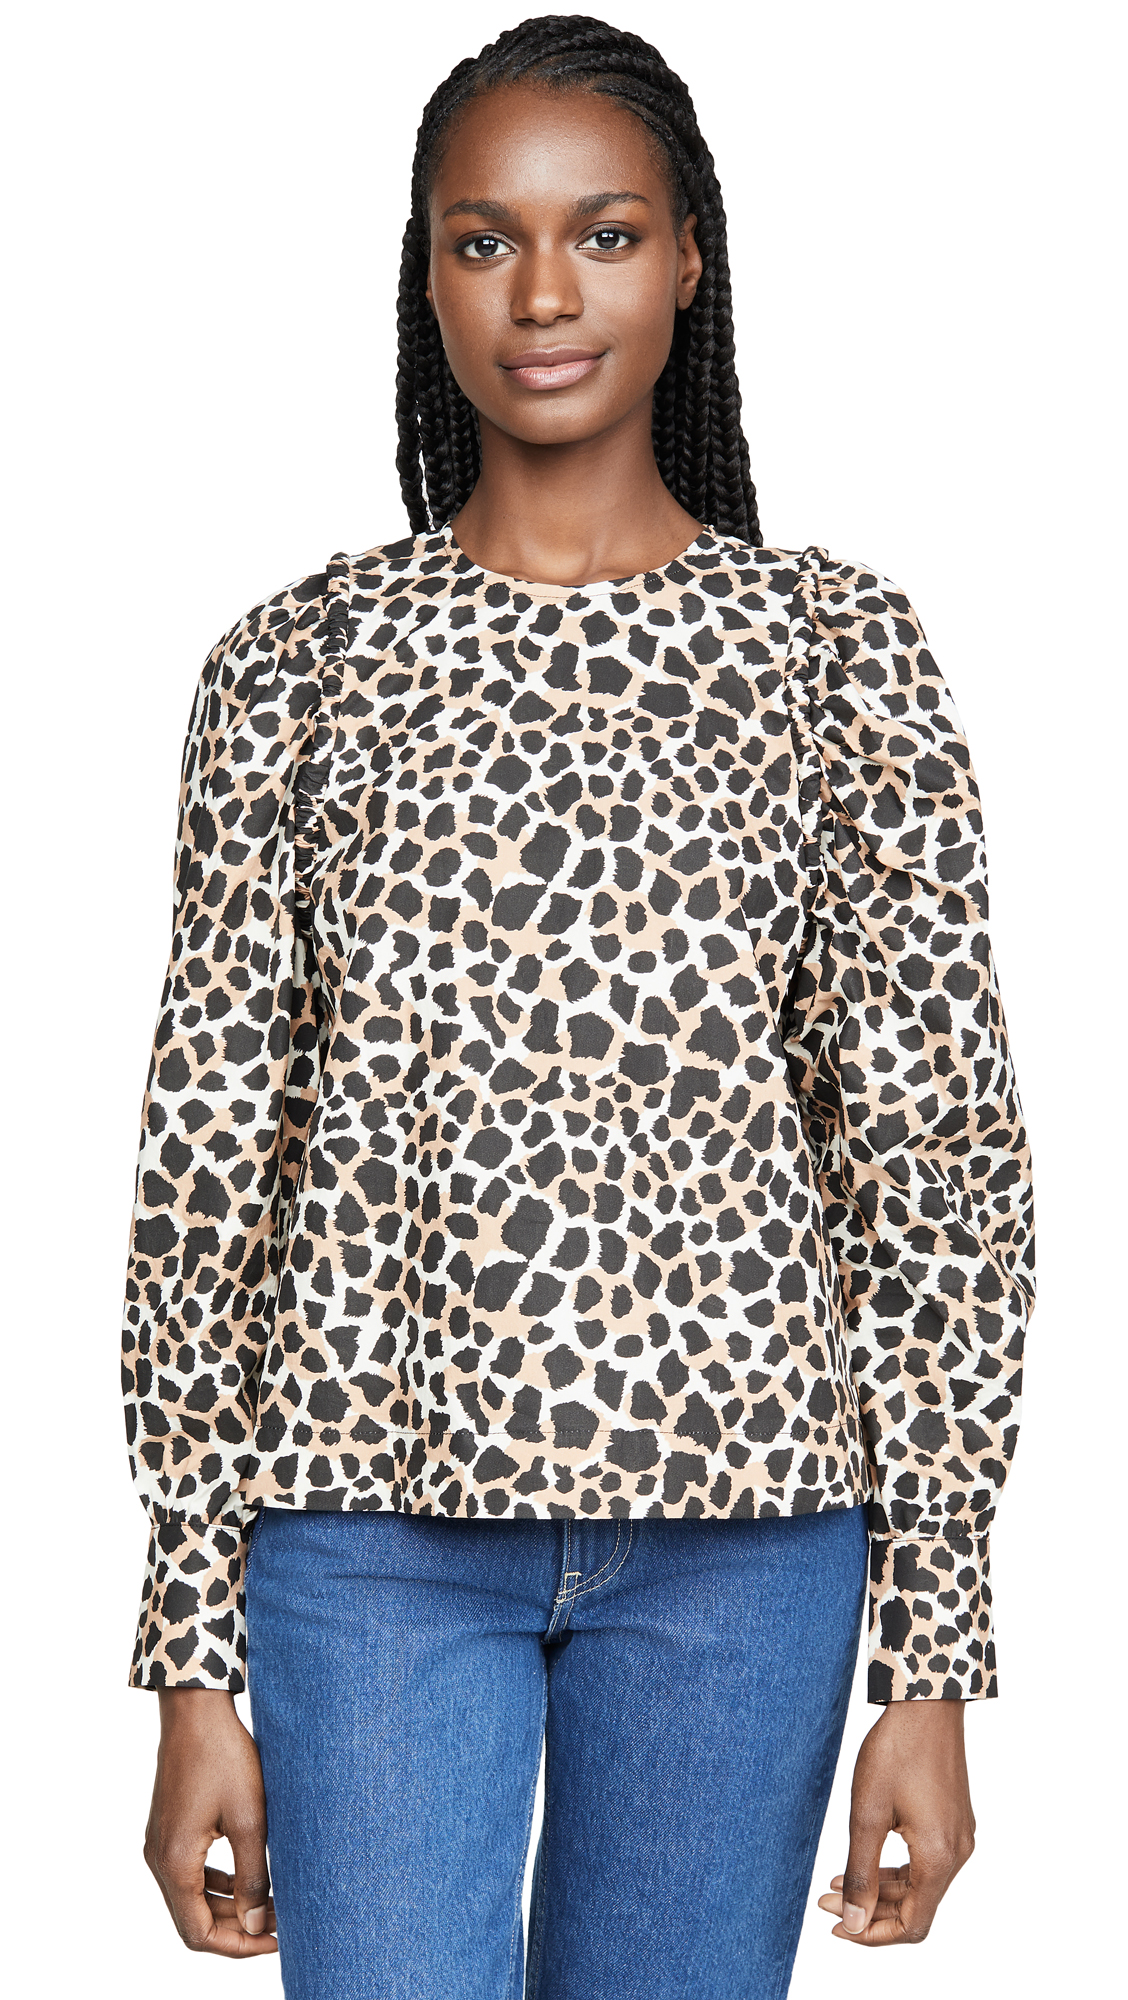 Sea Corded Long Sleeve Peasant Top - 55% Off Sale